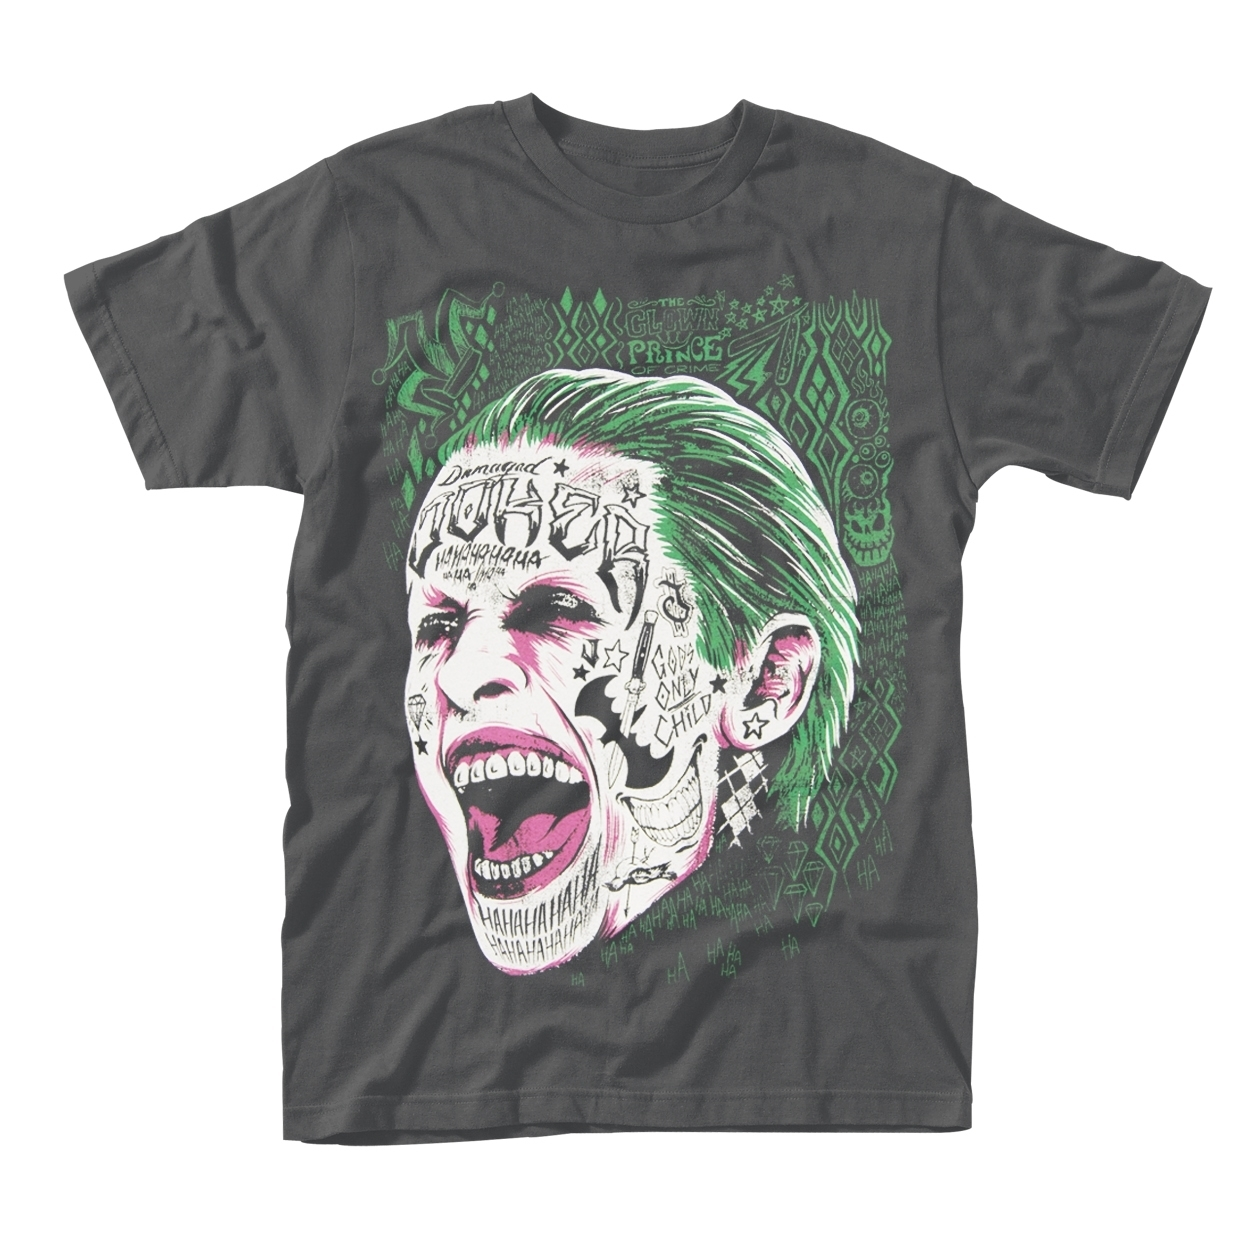 Suicide Squad Joker Face T-Shirt (Small) image